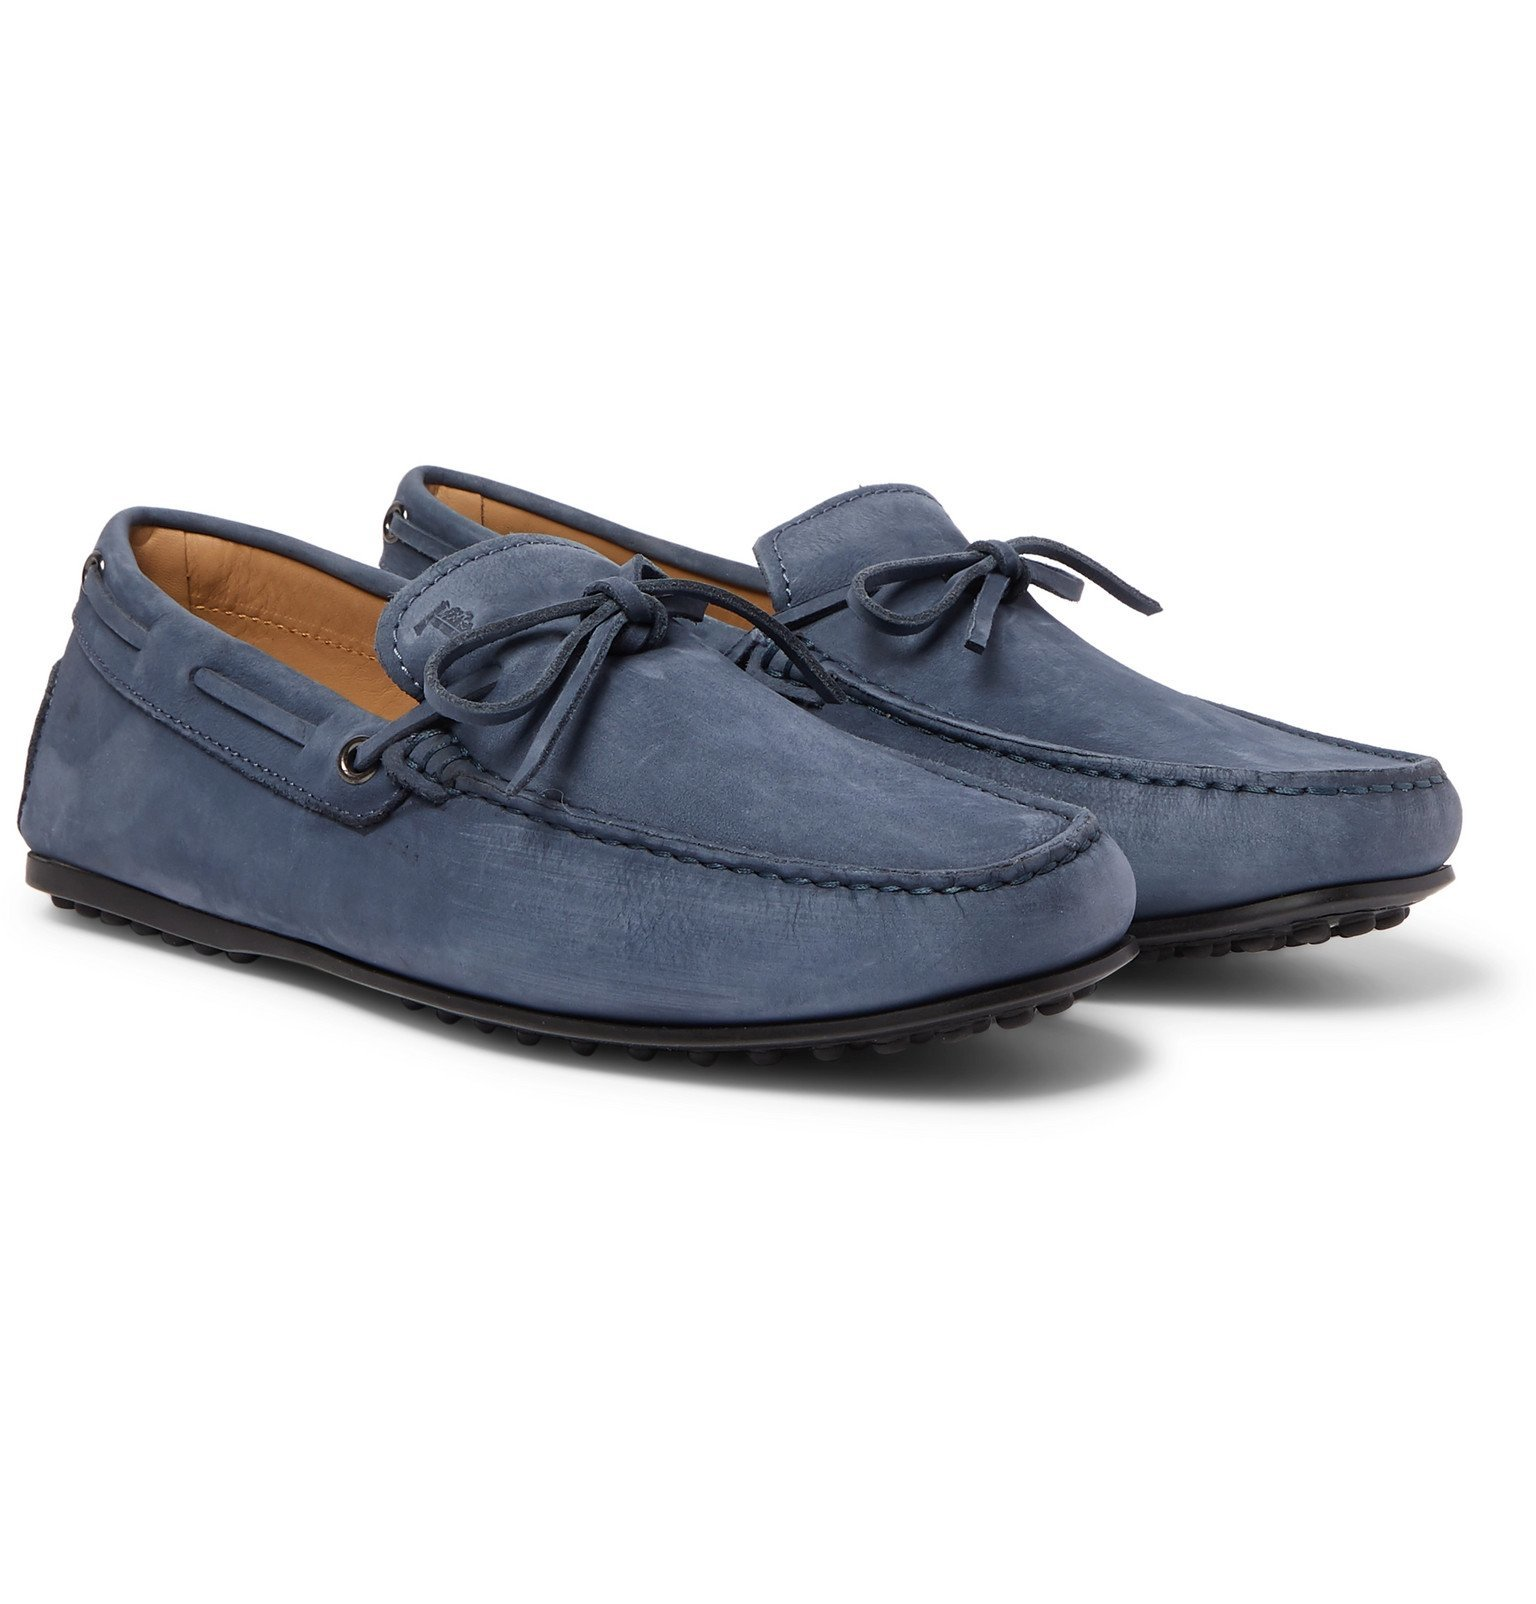 Tod's - City Gommino Nubuck Driving Shoes - Blue